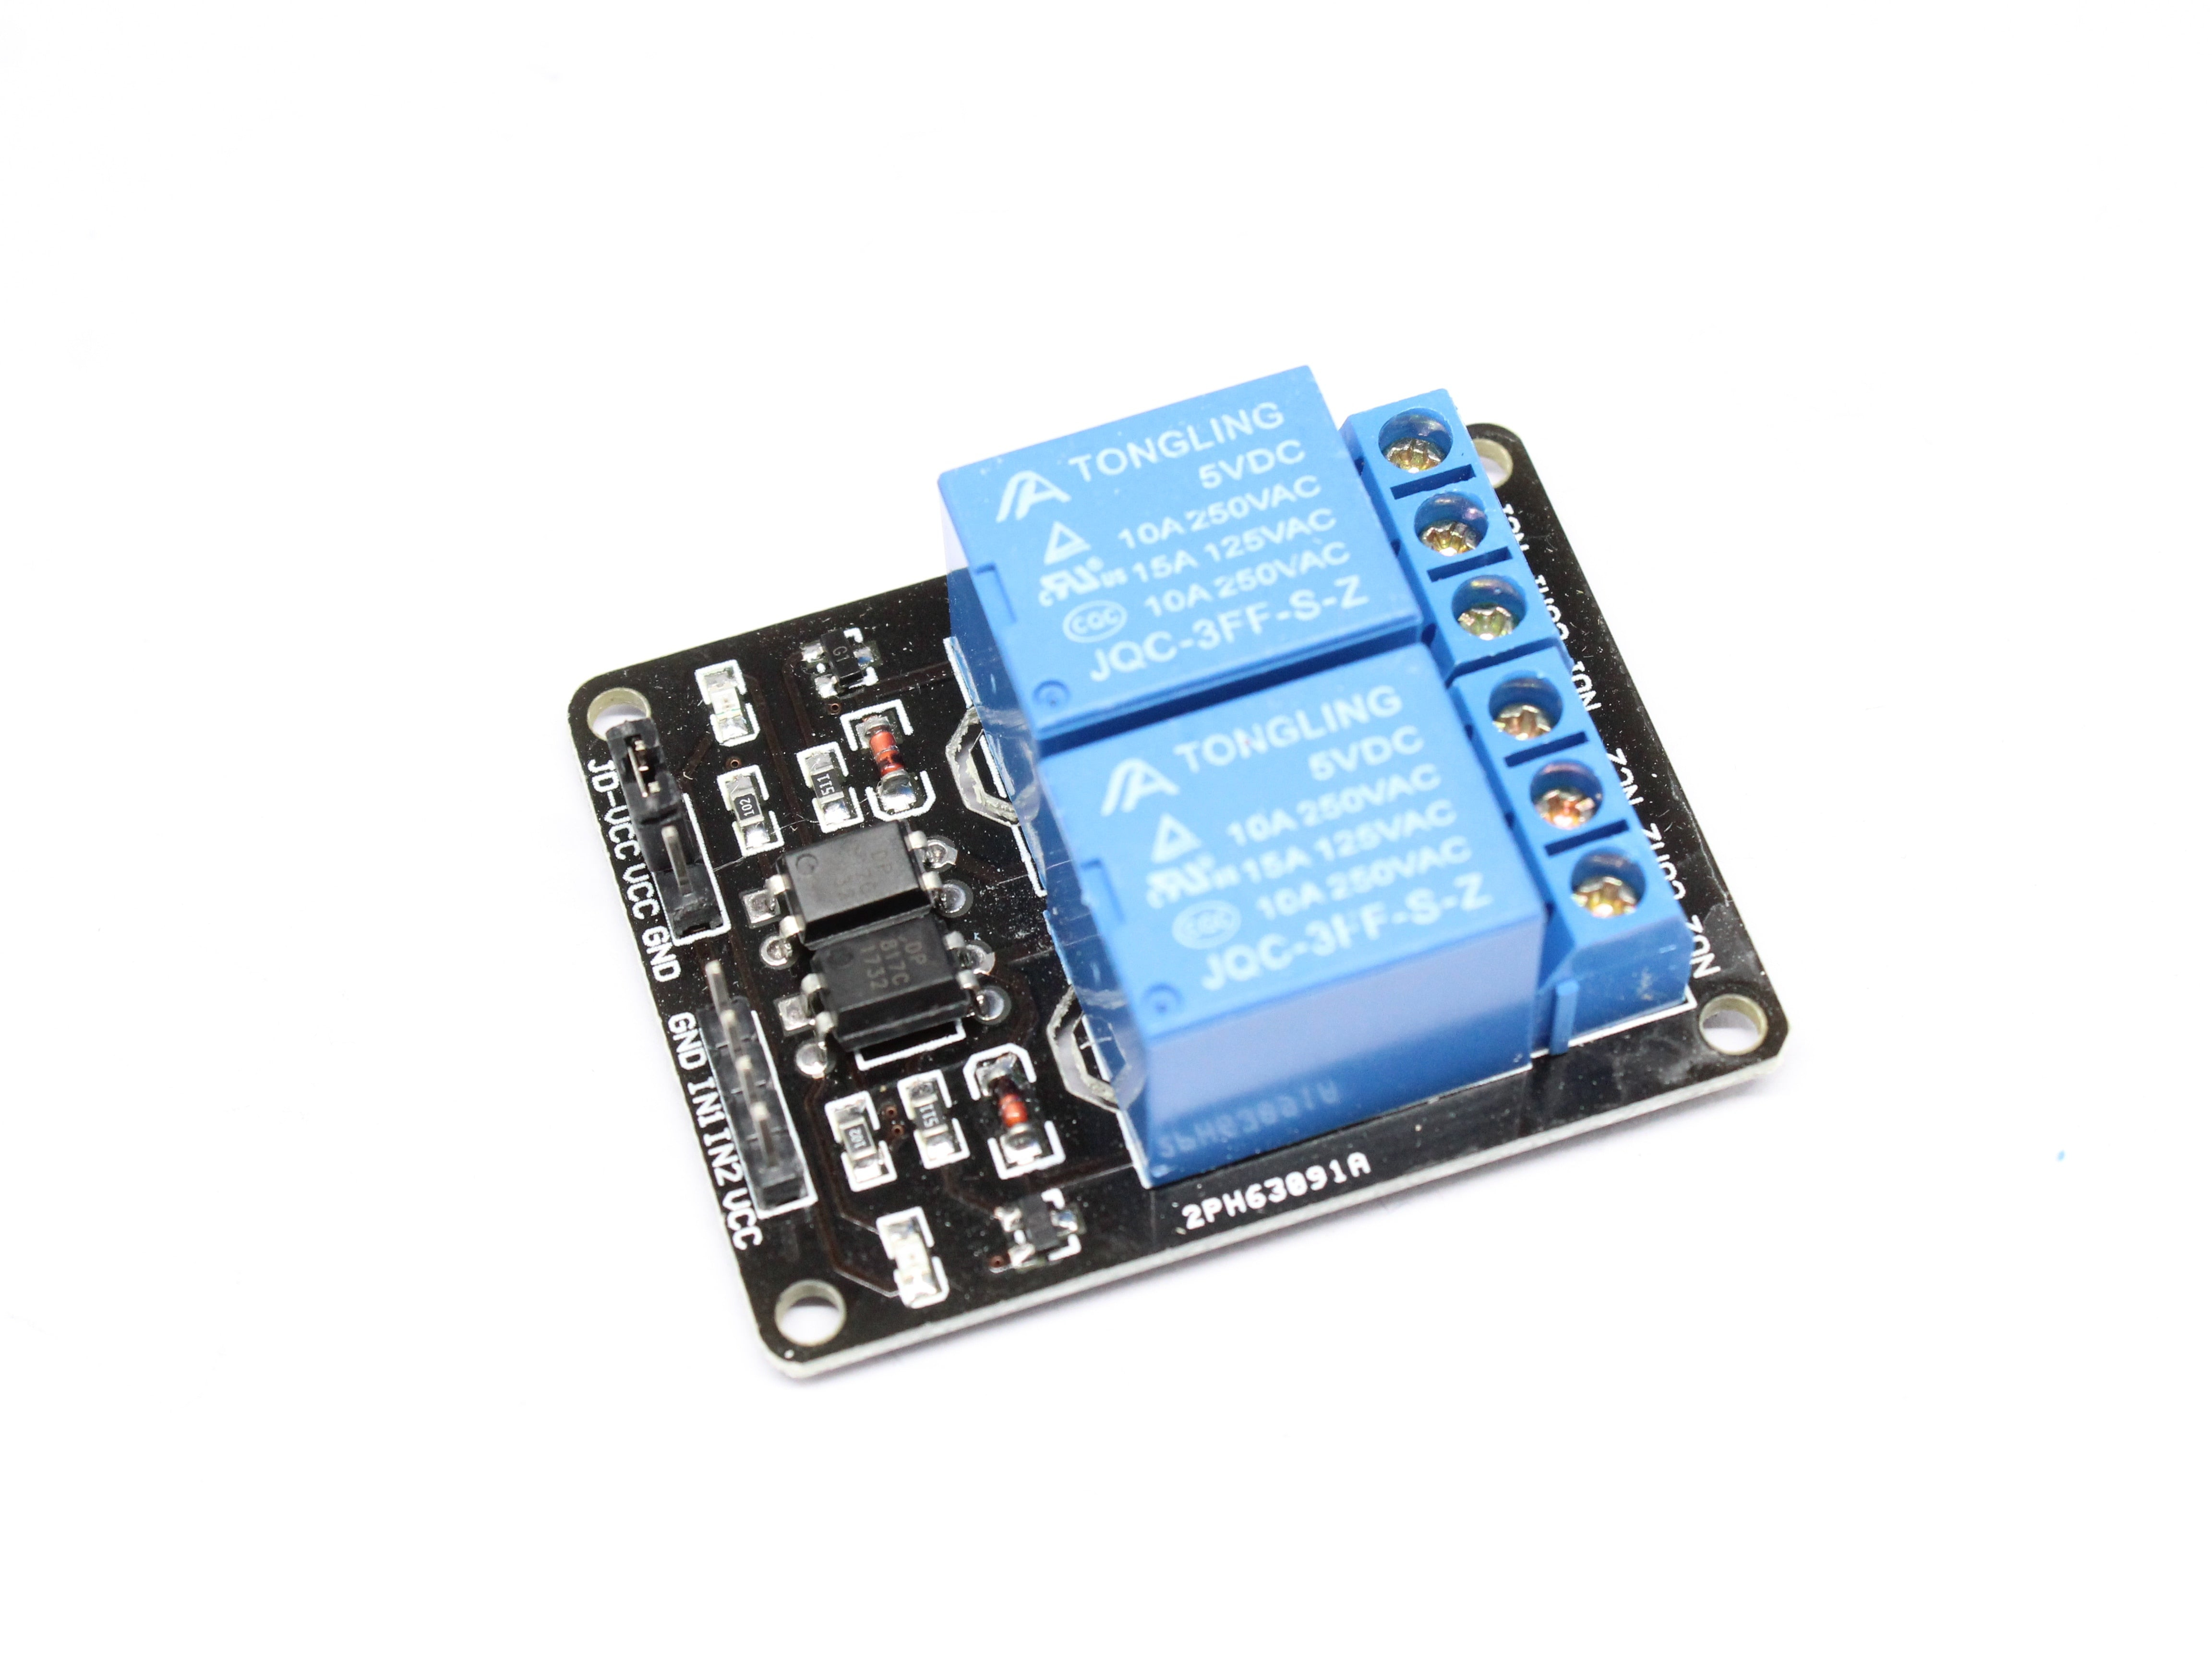 1pcs 5v 12v 1/2/4/6/8 channel relay module with optocoupler for arduino - PICTOROBO